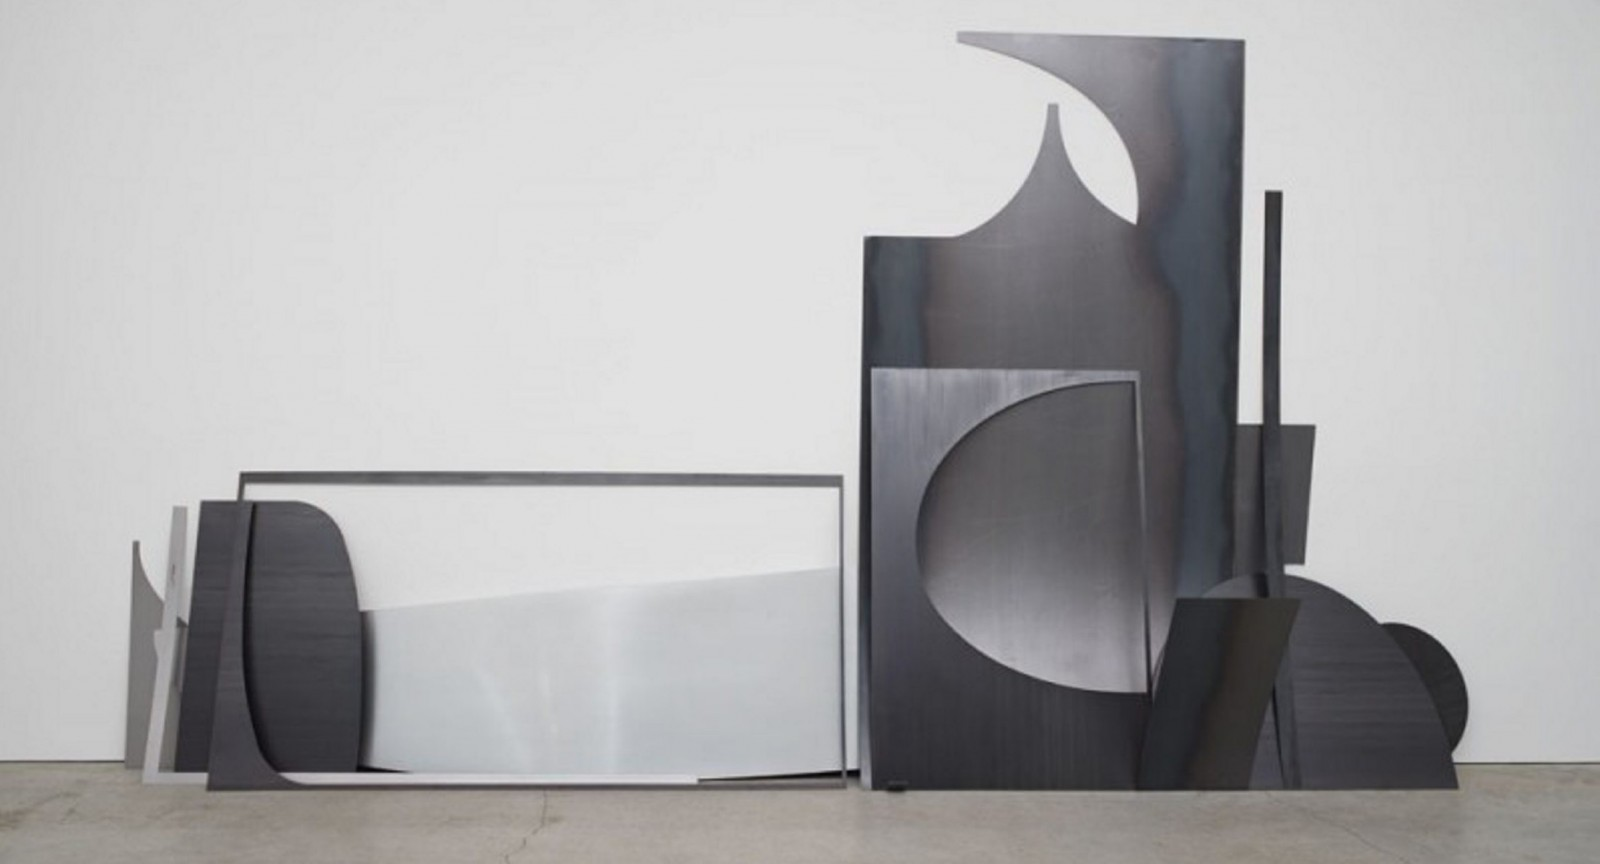 'Drop (no. 14),' a sculptural installation by Erin Shirreff, is part of the artist's solo exhibition in the Albright-Knox Art Gallery.